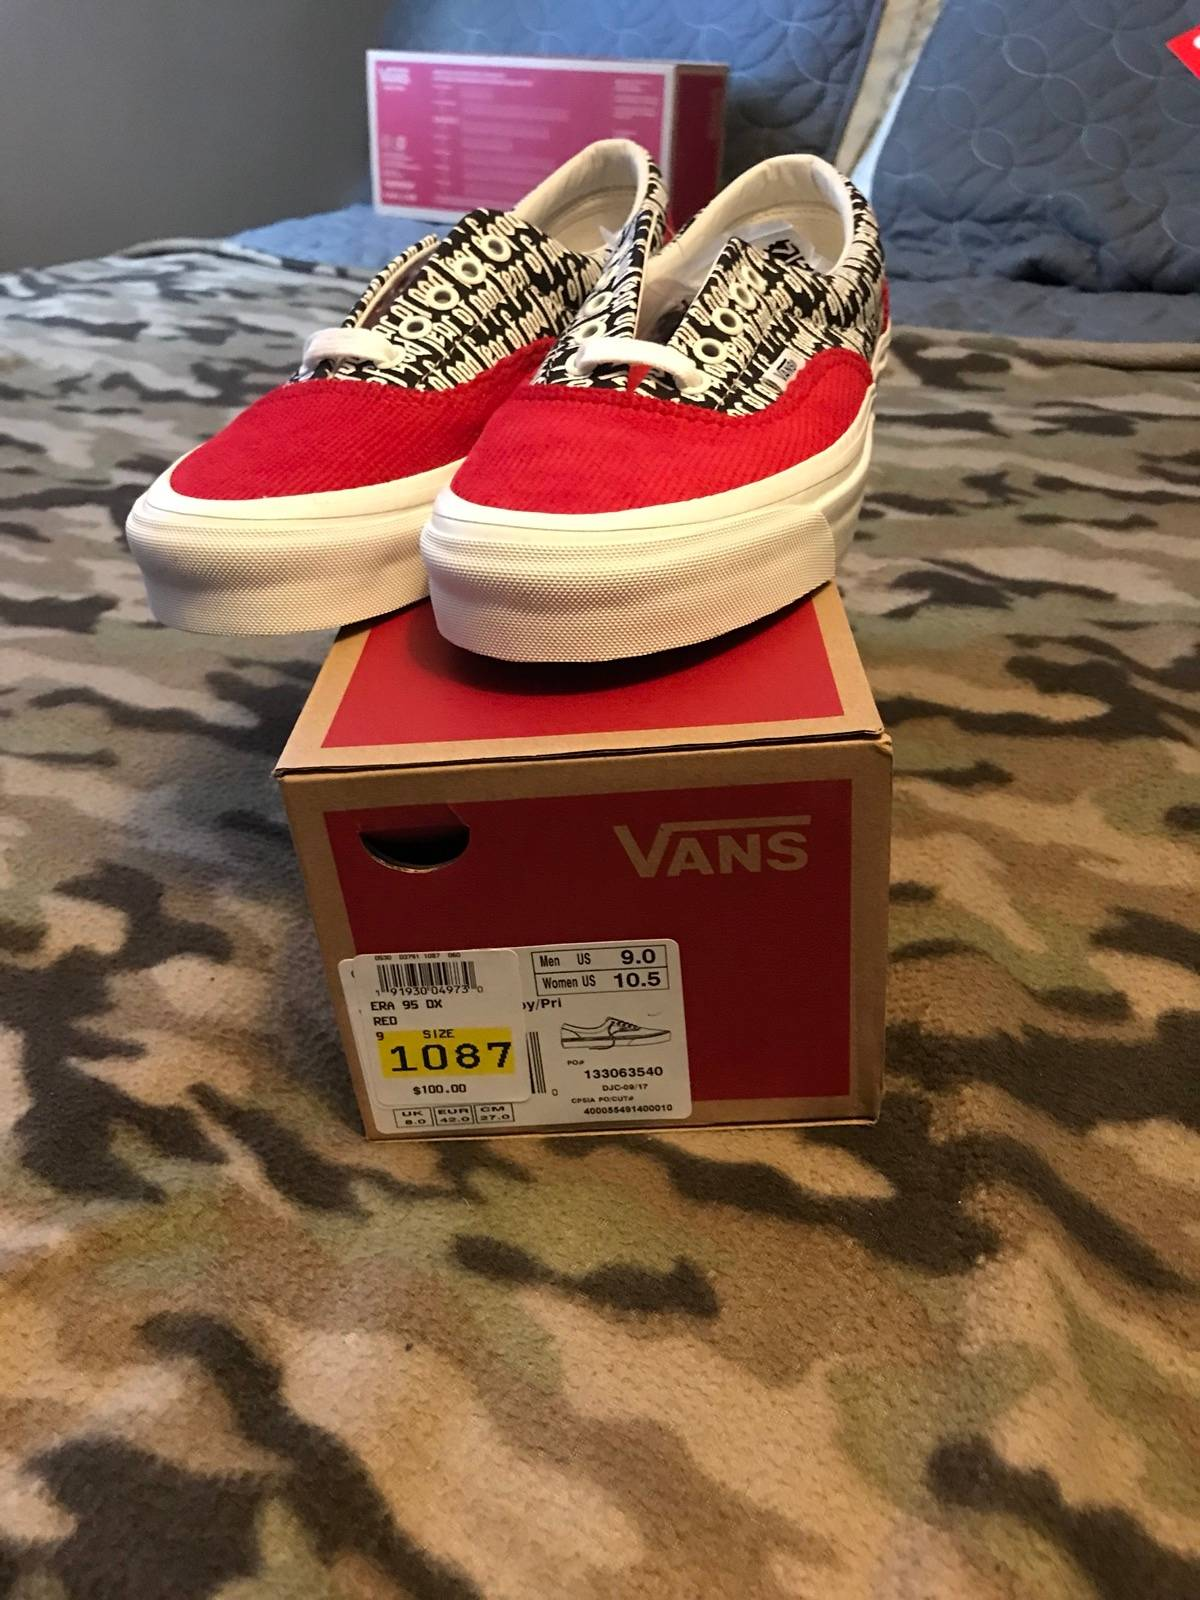 2a2806a00eb Fear of God Fear Of God Vans Size 9 - Low-Top Sneakers for Sale ...